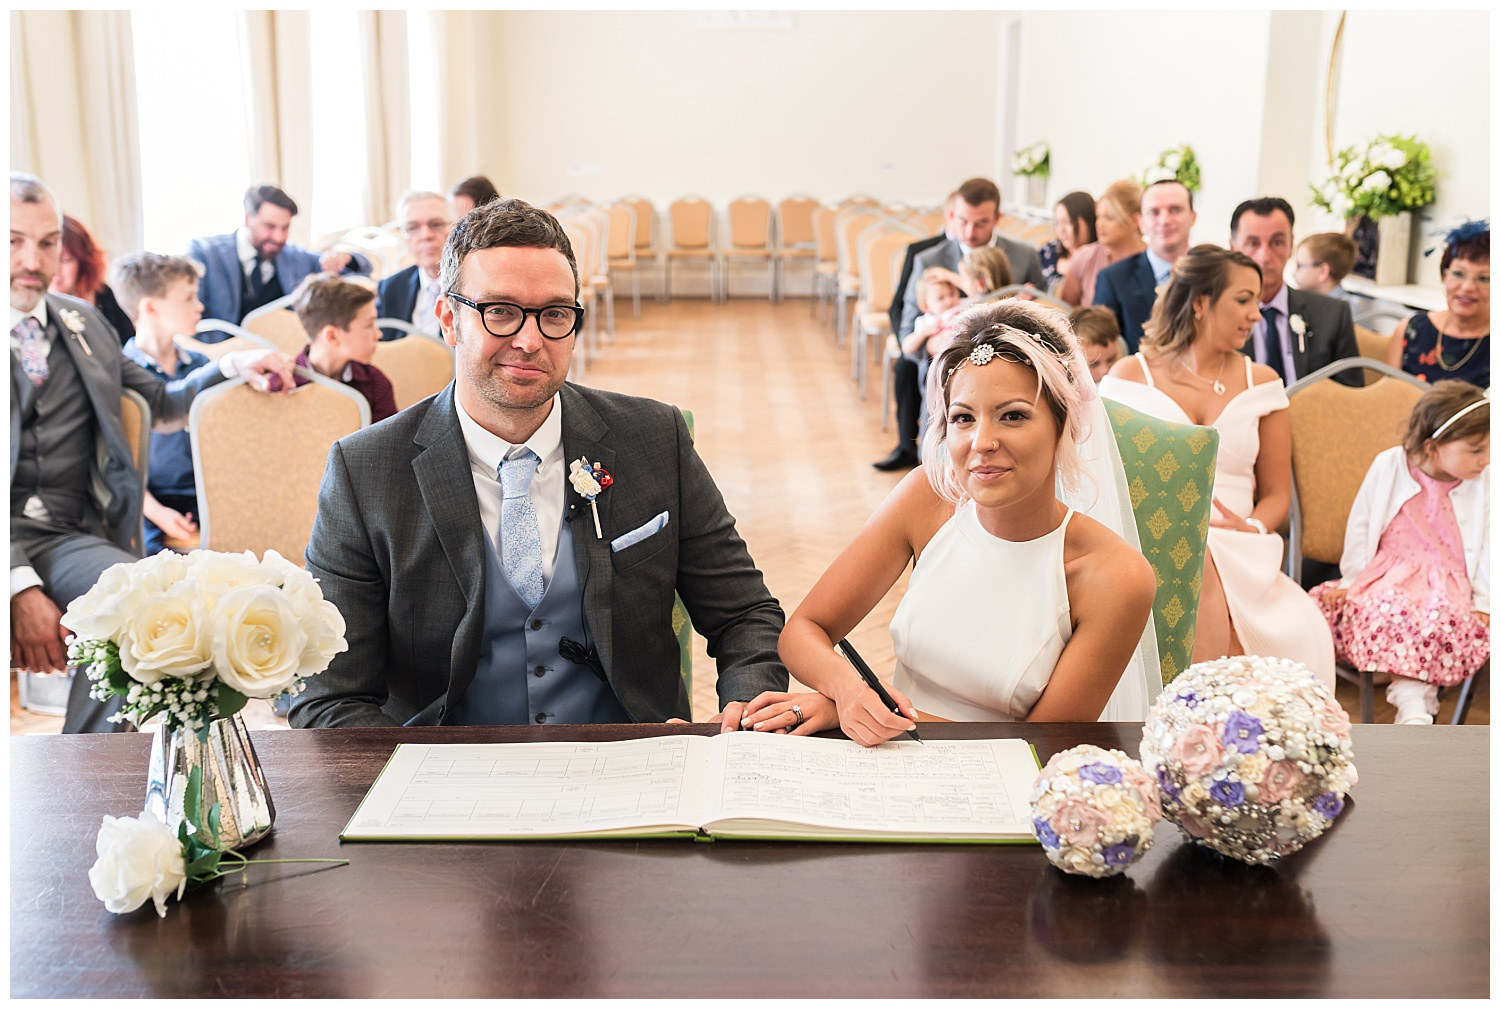 Signing register at York House Wedding